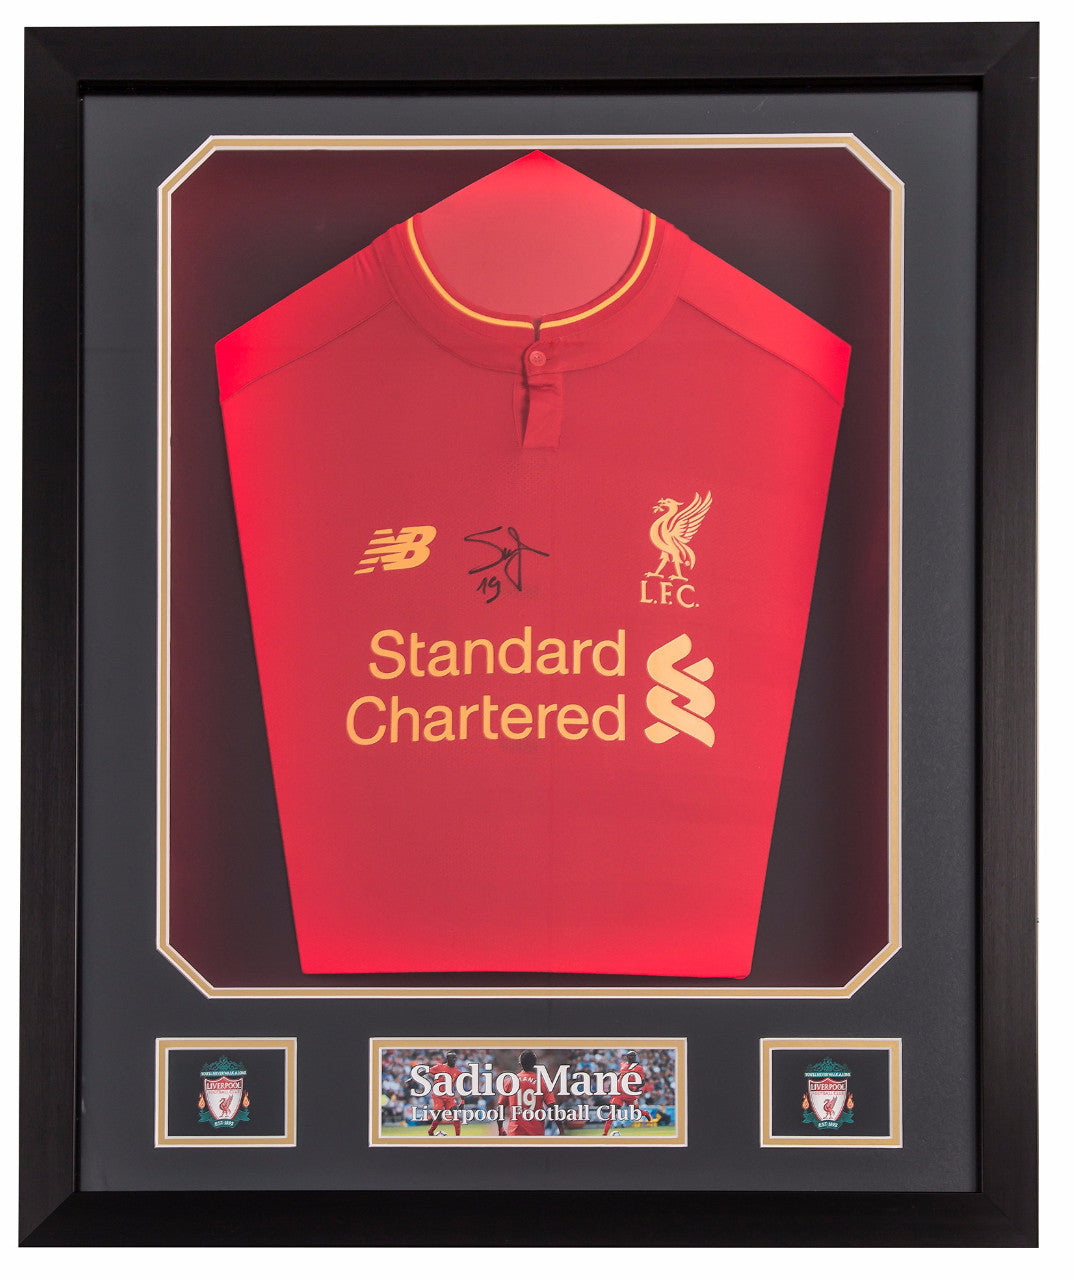 Sadio Mané Signed Liverpool 2015/16 Shirt - Premium Framed